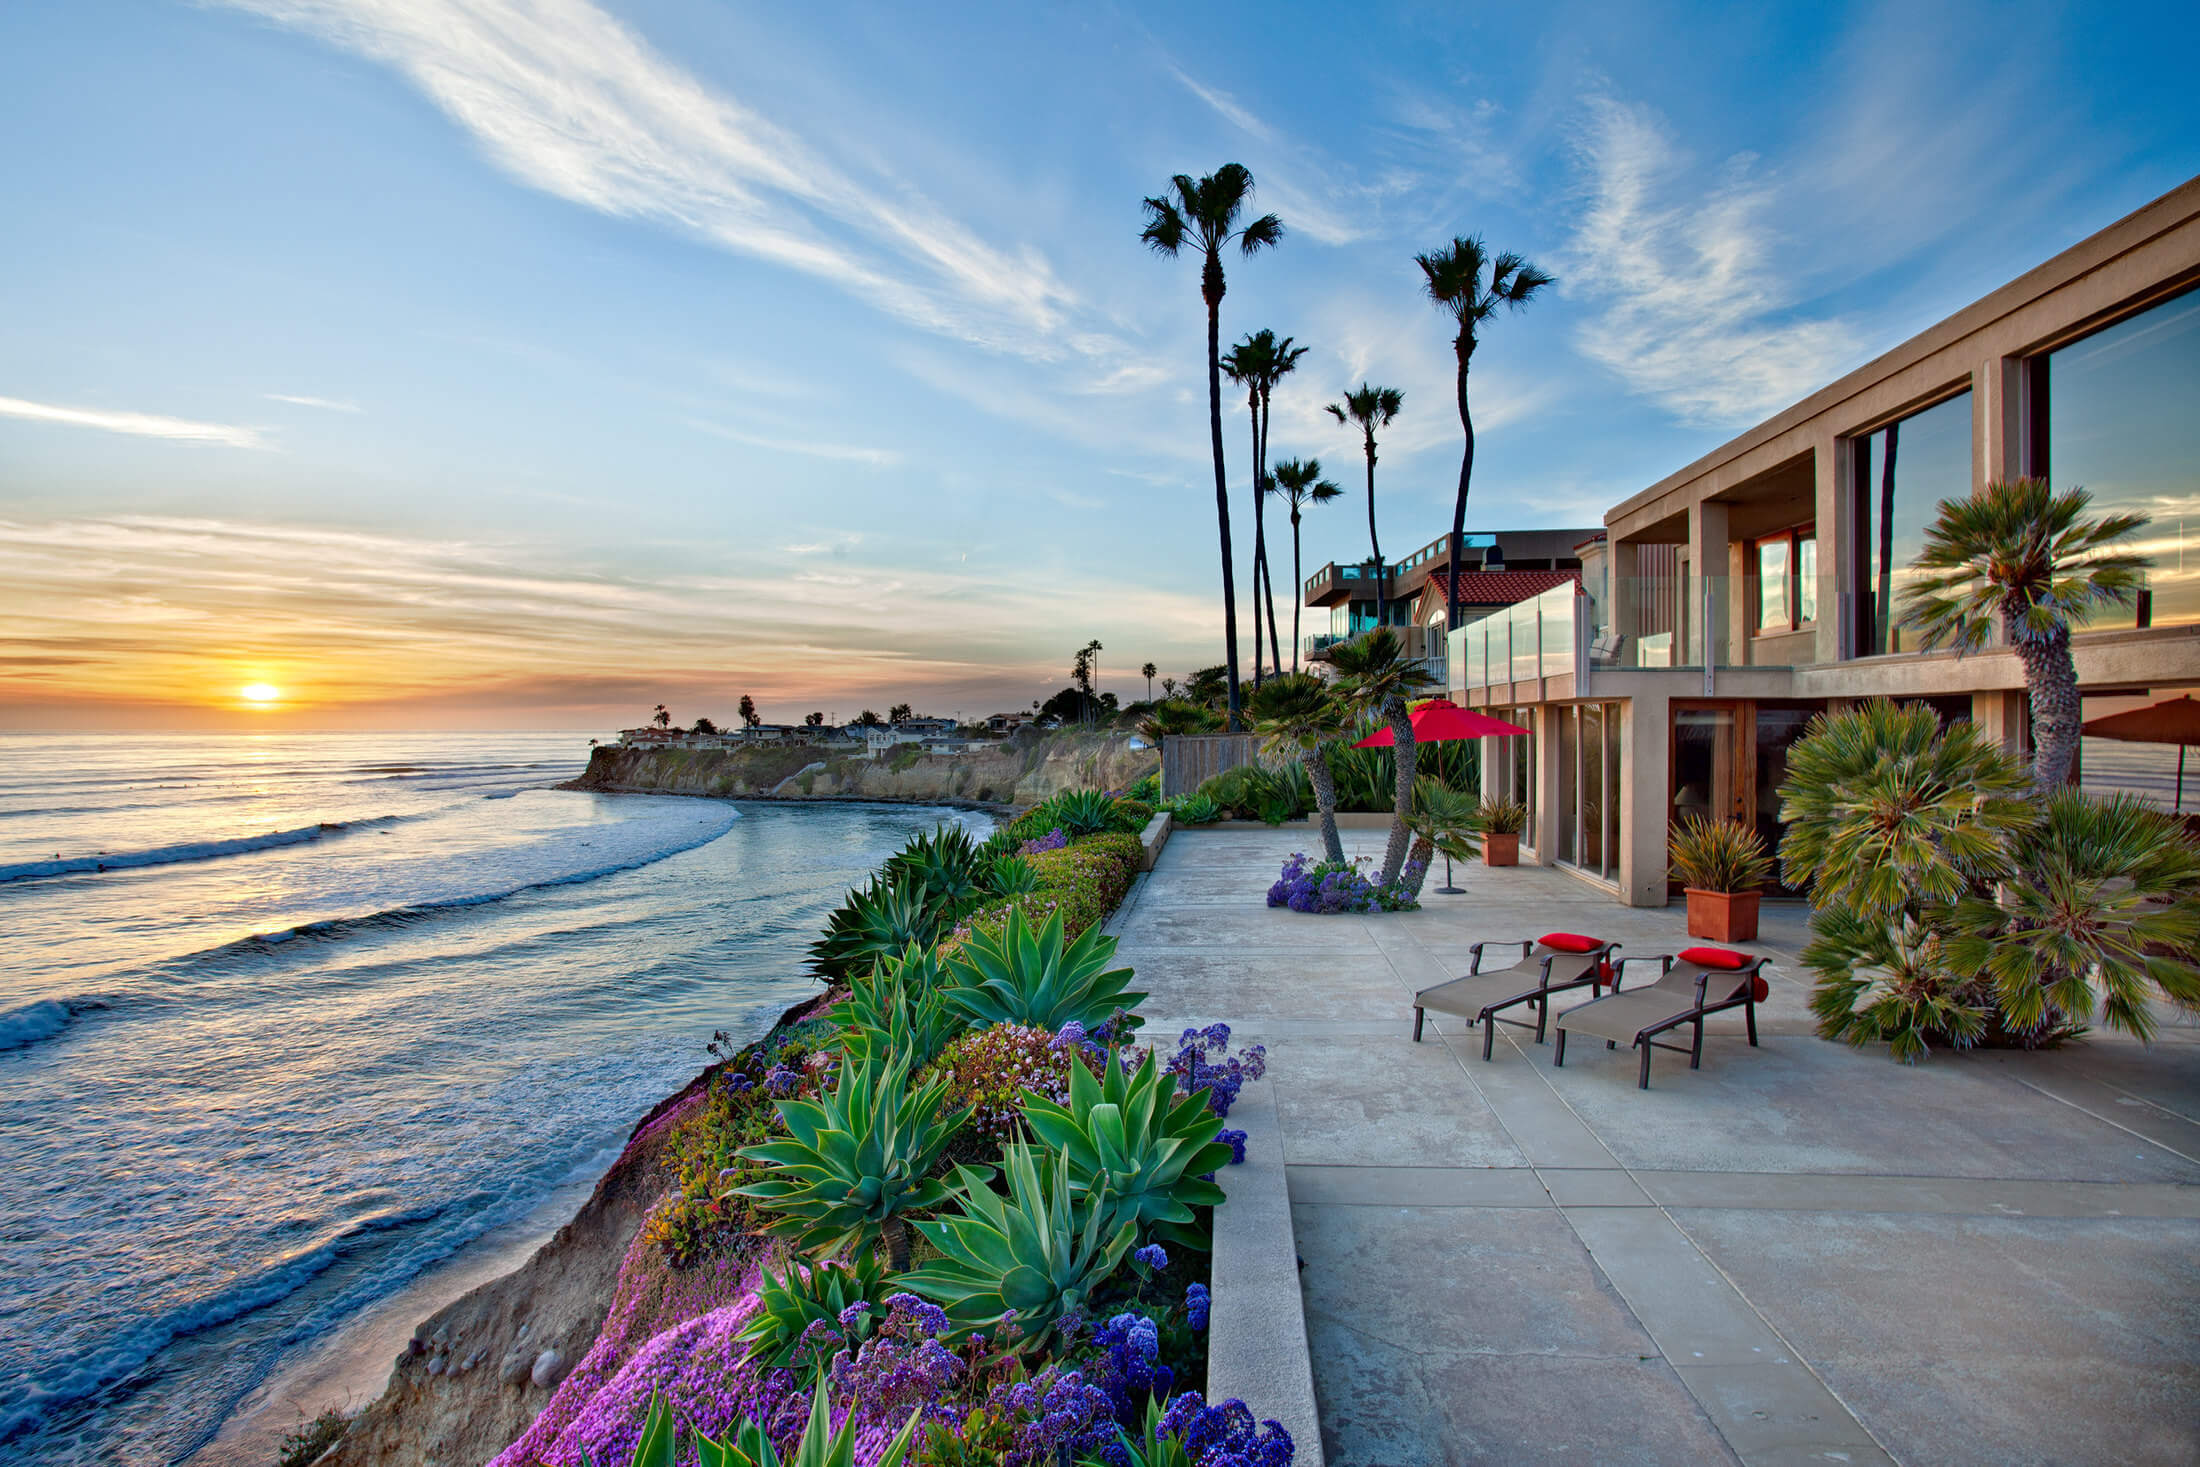 17855 Highway 67 Ramona CA 92065 sandicor180037408 likewise Dark Grey Wallpaper together with Shen Unkhjbyyk additionally Cities Affordable Housing Design Solution Missing Middle likewise San Diego Downtown. on imperial beach homes